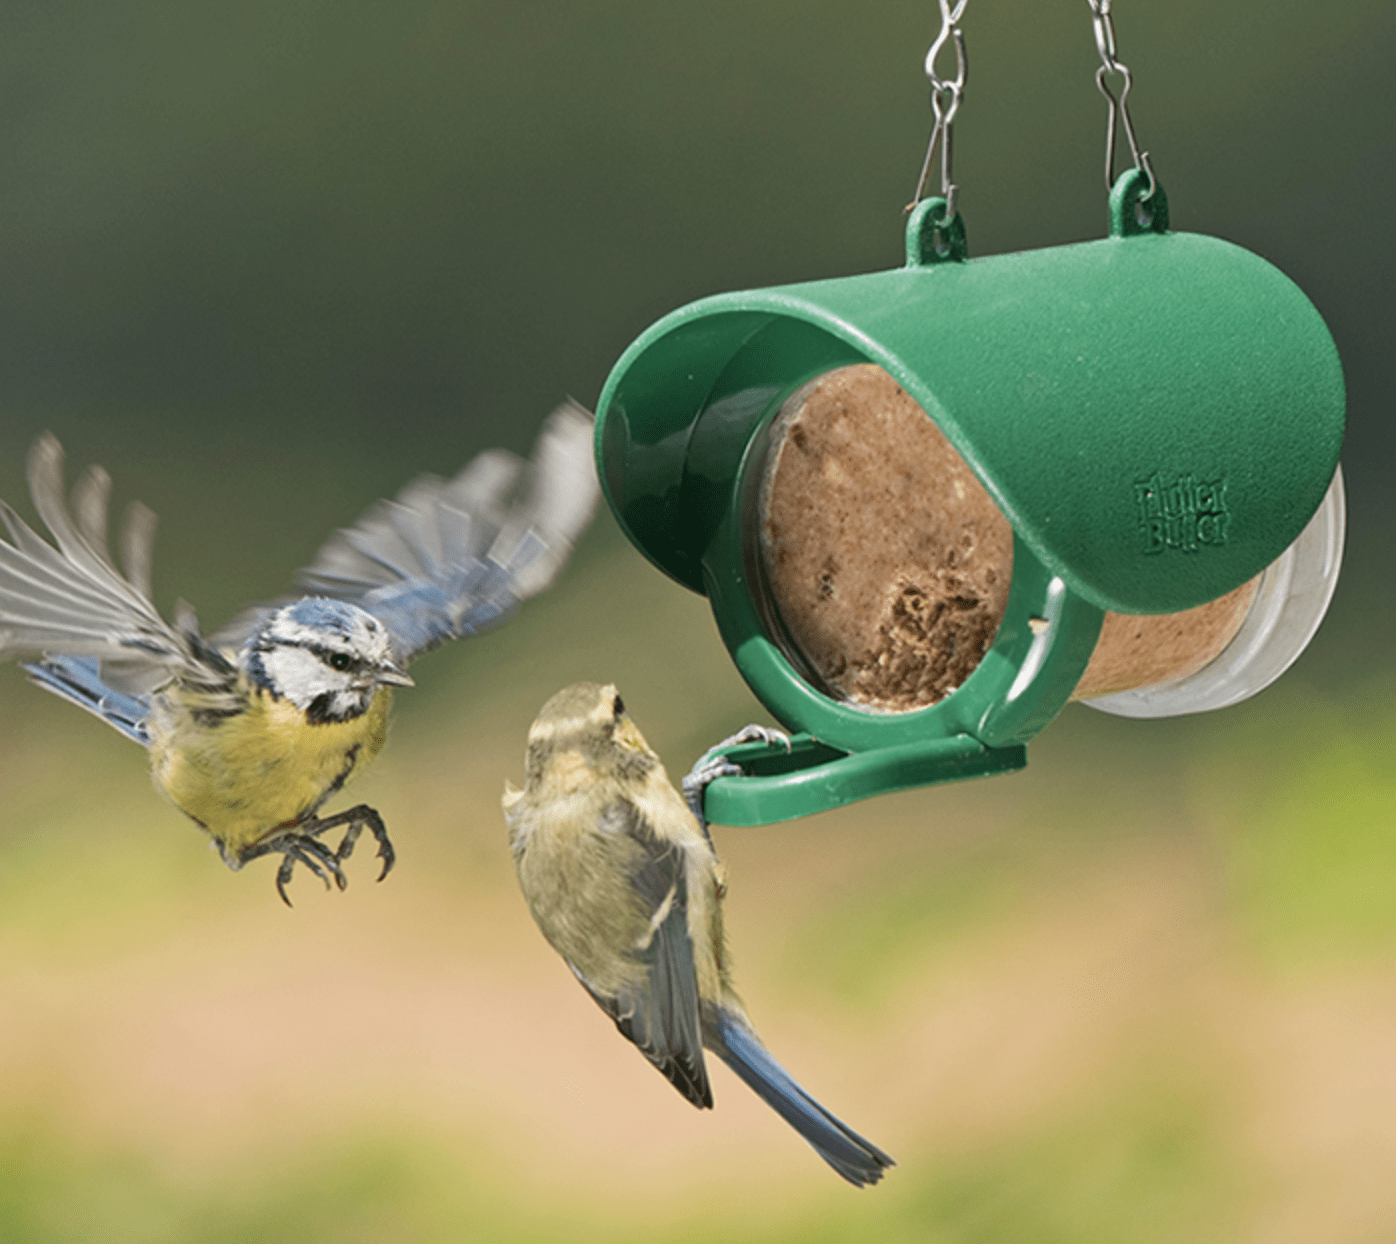 Two birds at a peanut butter feeder.